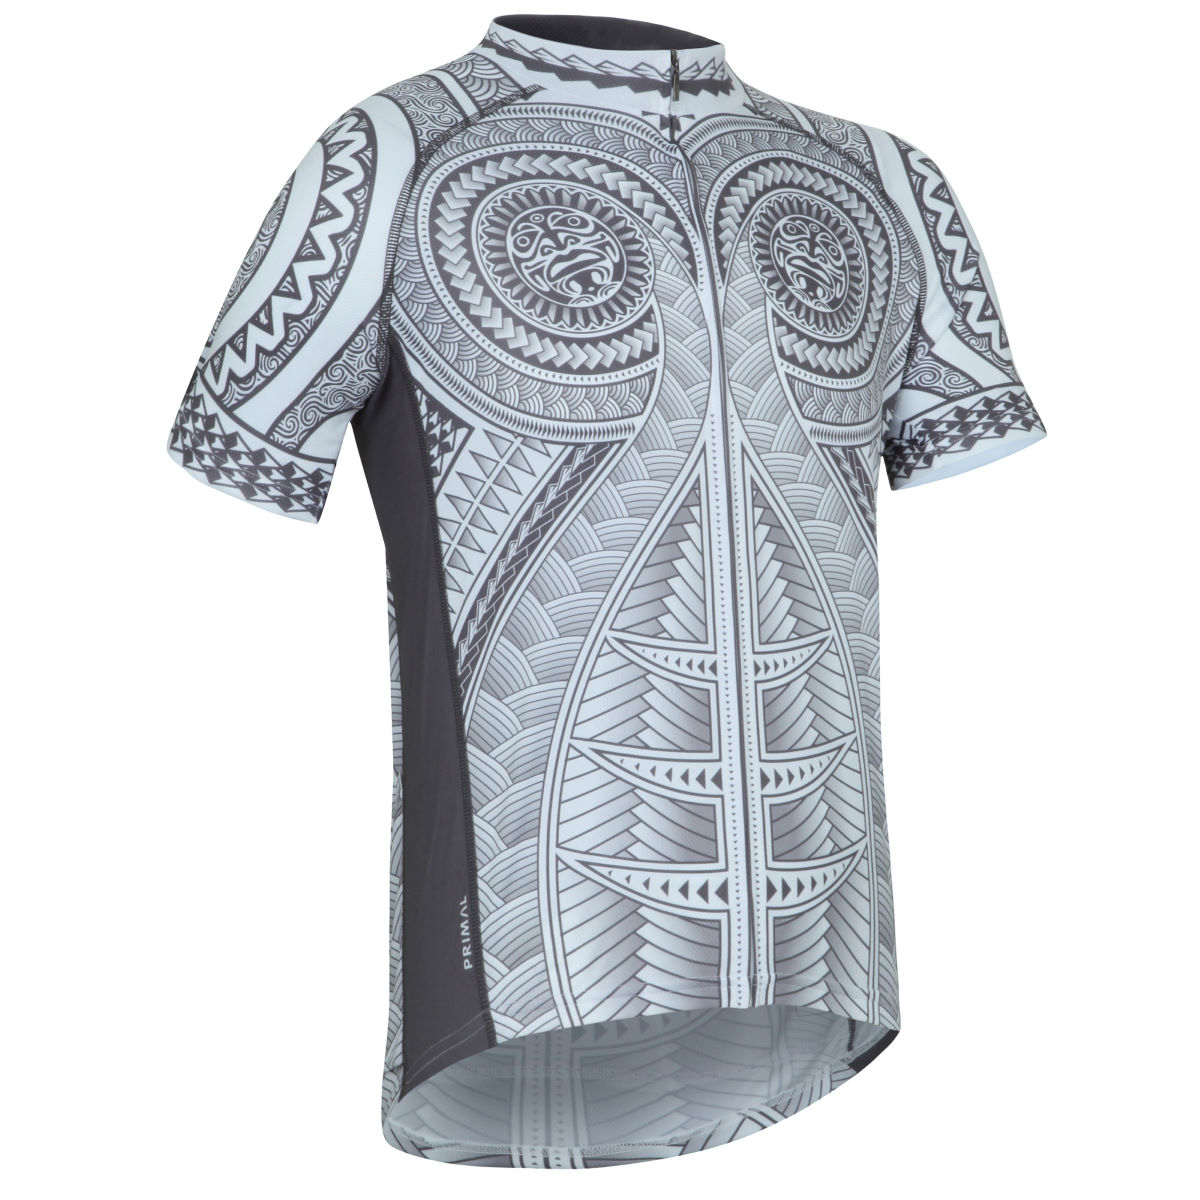 Maillot Primal Haka (coupe sportive) - S Gris/Blanc Maillots